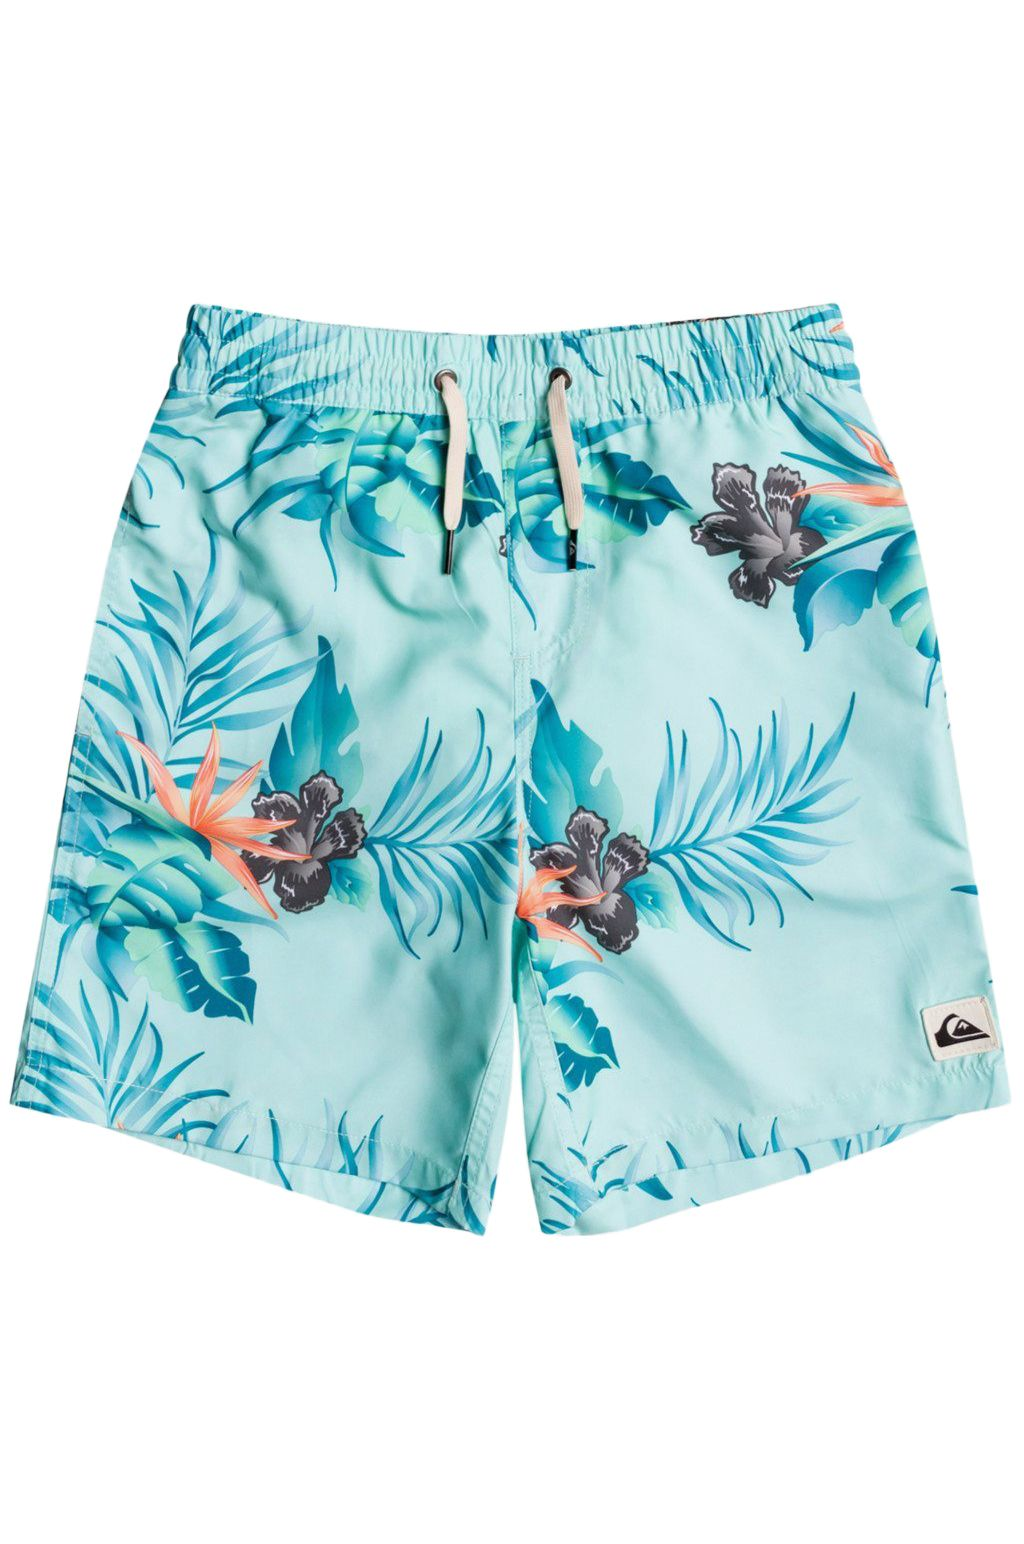 Volleys Quiksilver PARADISE EXPRESS 15 Cabbage